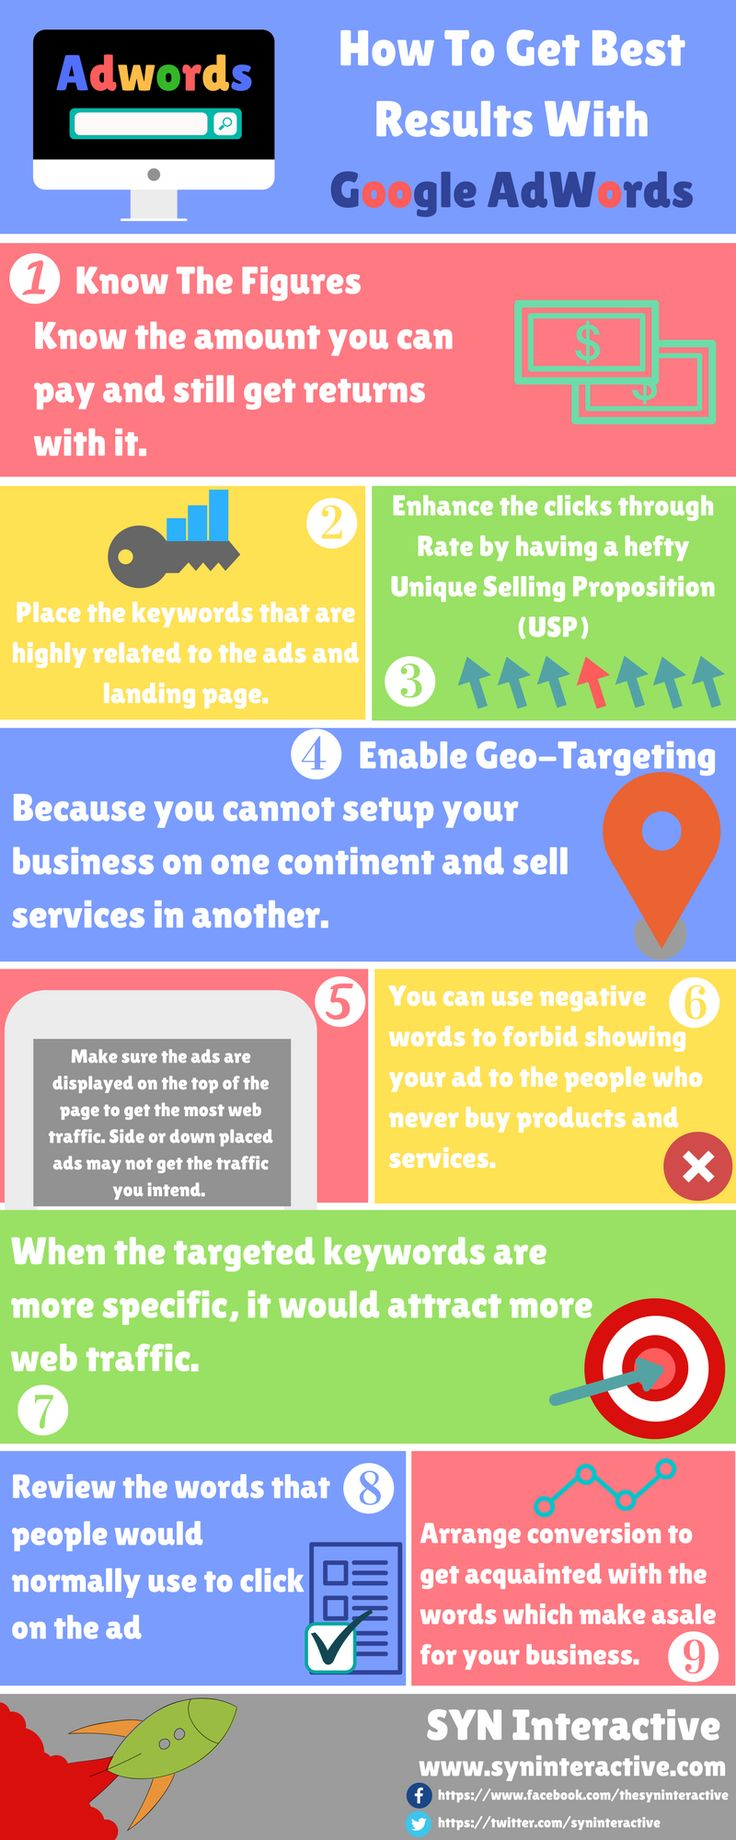 How to Get Best Results With Google AdWords #infographic http://bit.ly/2mvUxoF